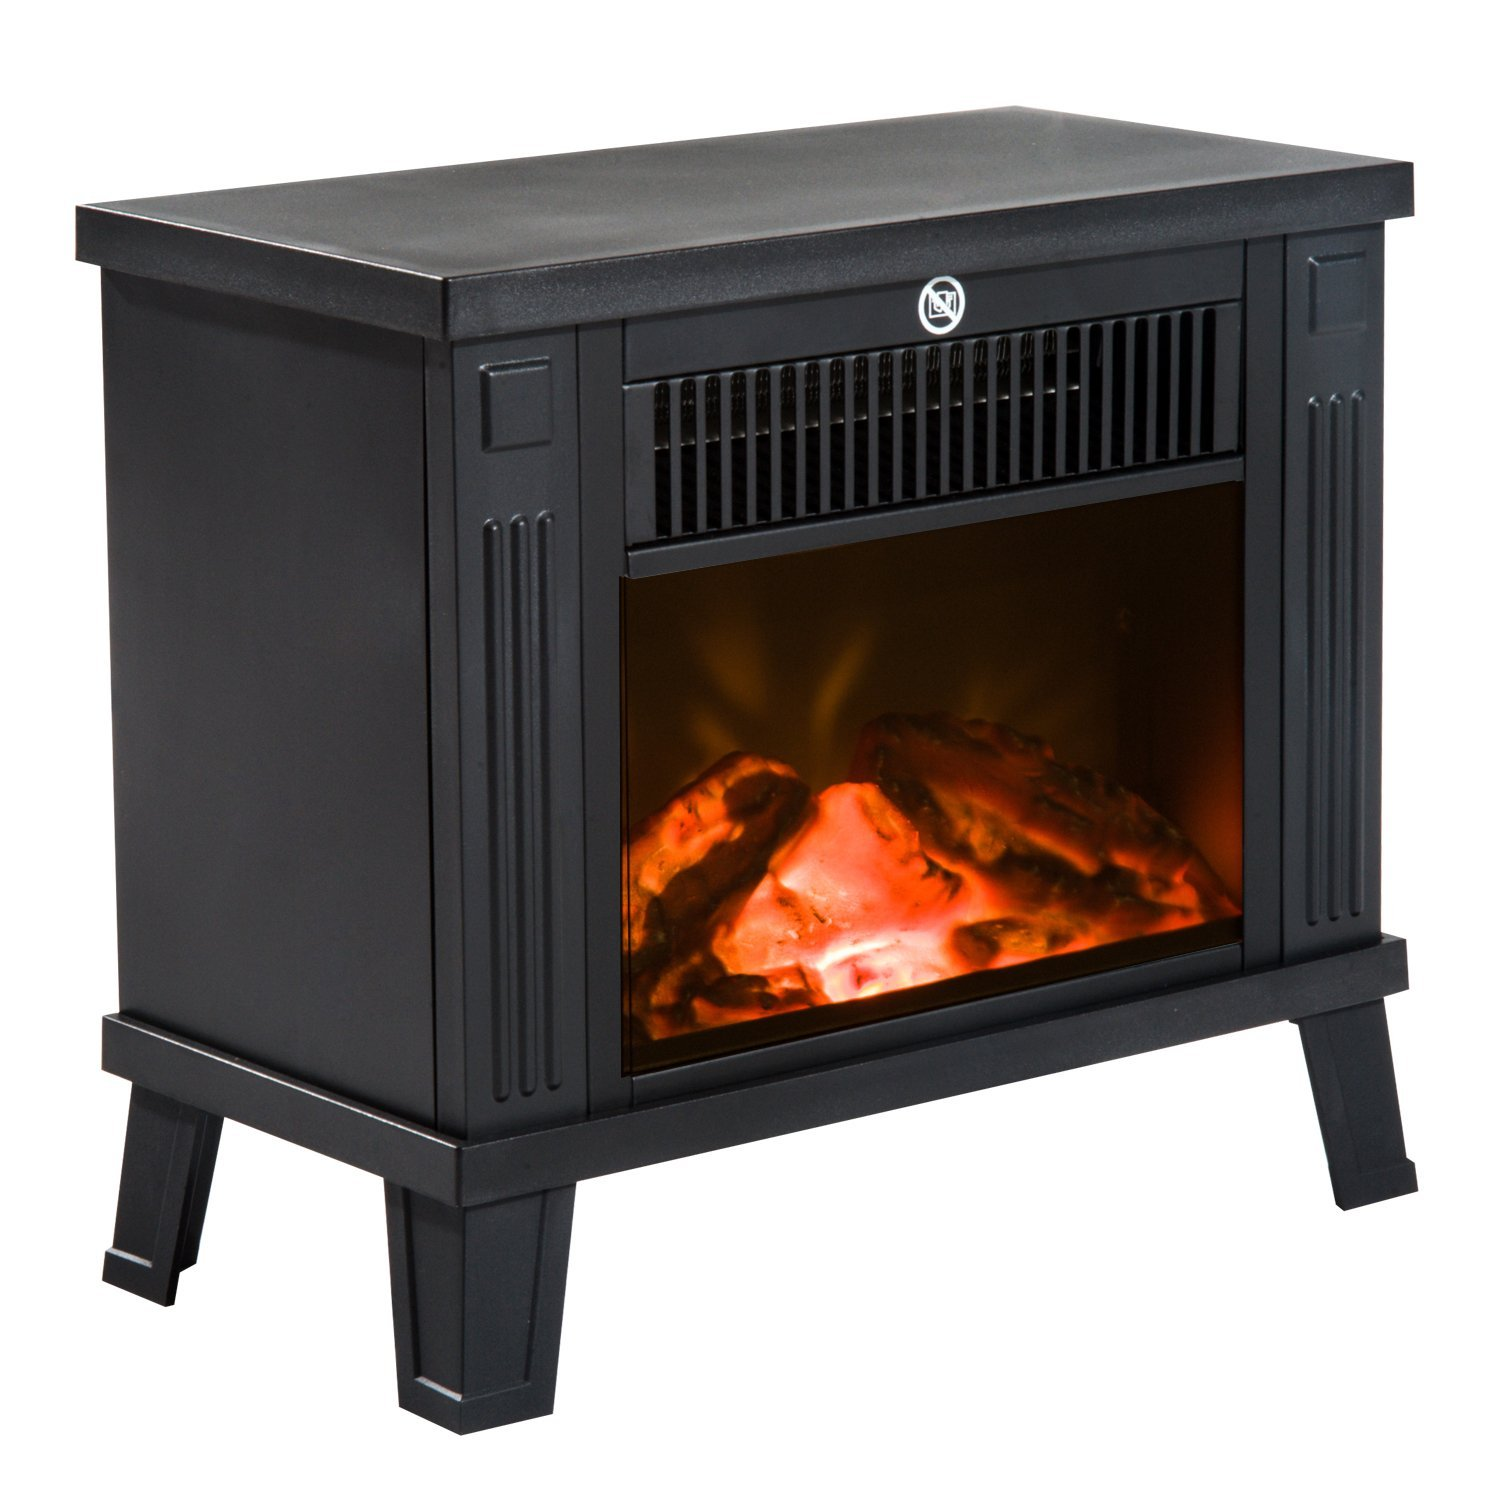 HOMCOM Modern Electric Fireplace Power 600 W/1200 W With Flame Effect Floor 34.5x17x31 Black Inches